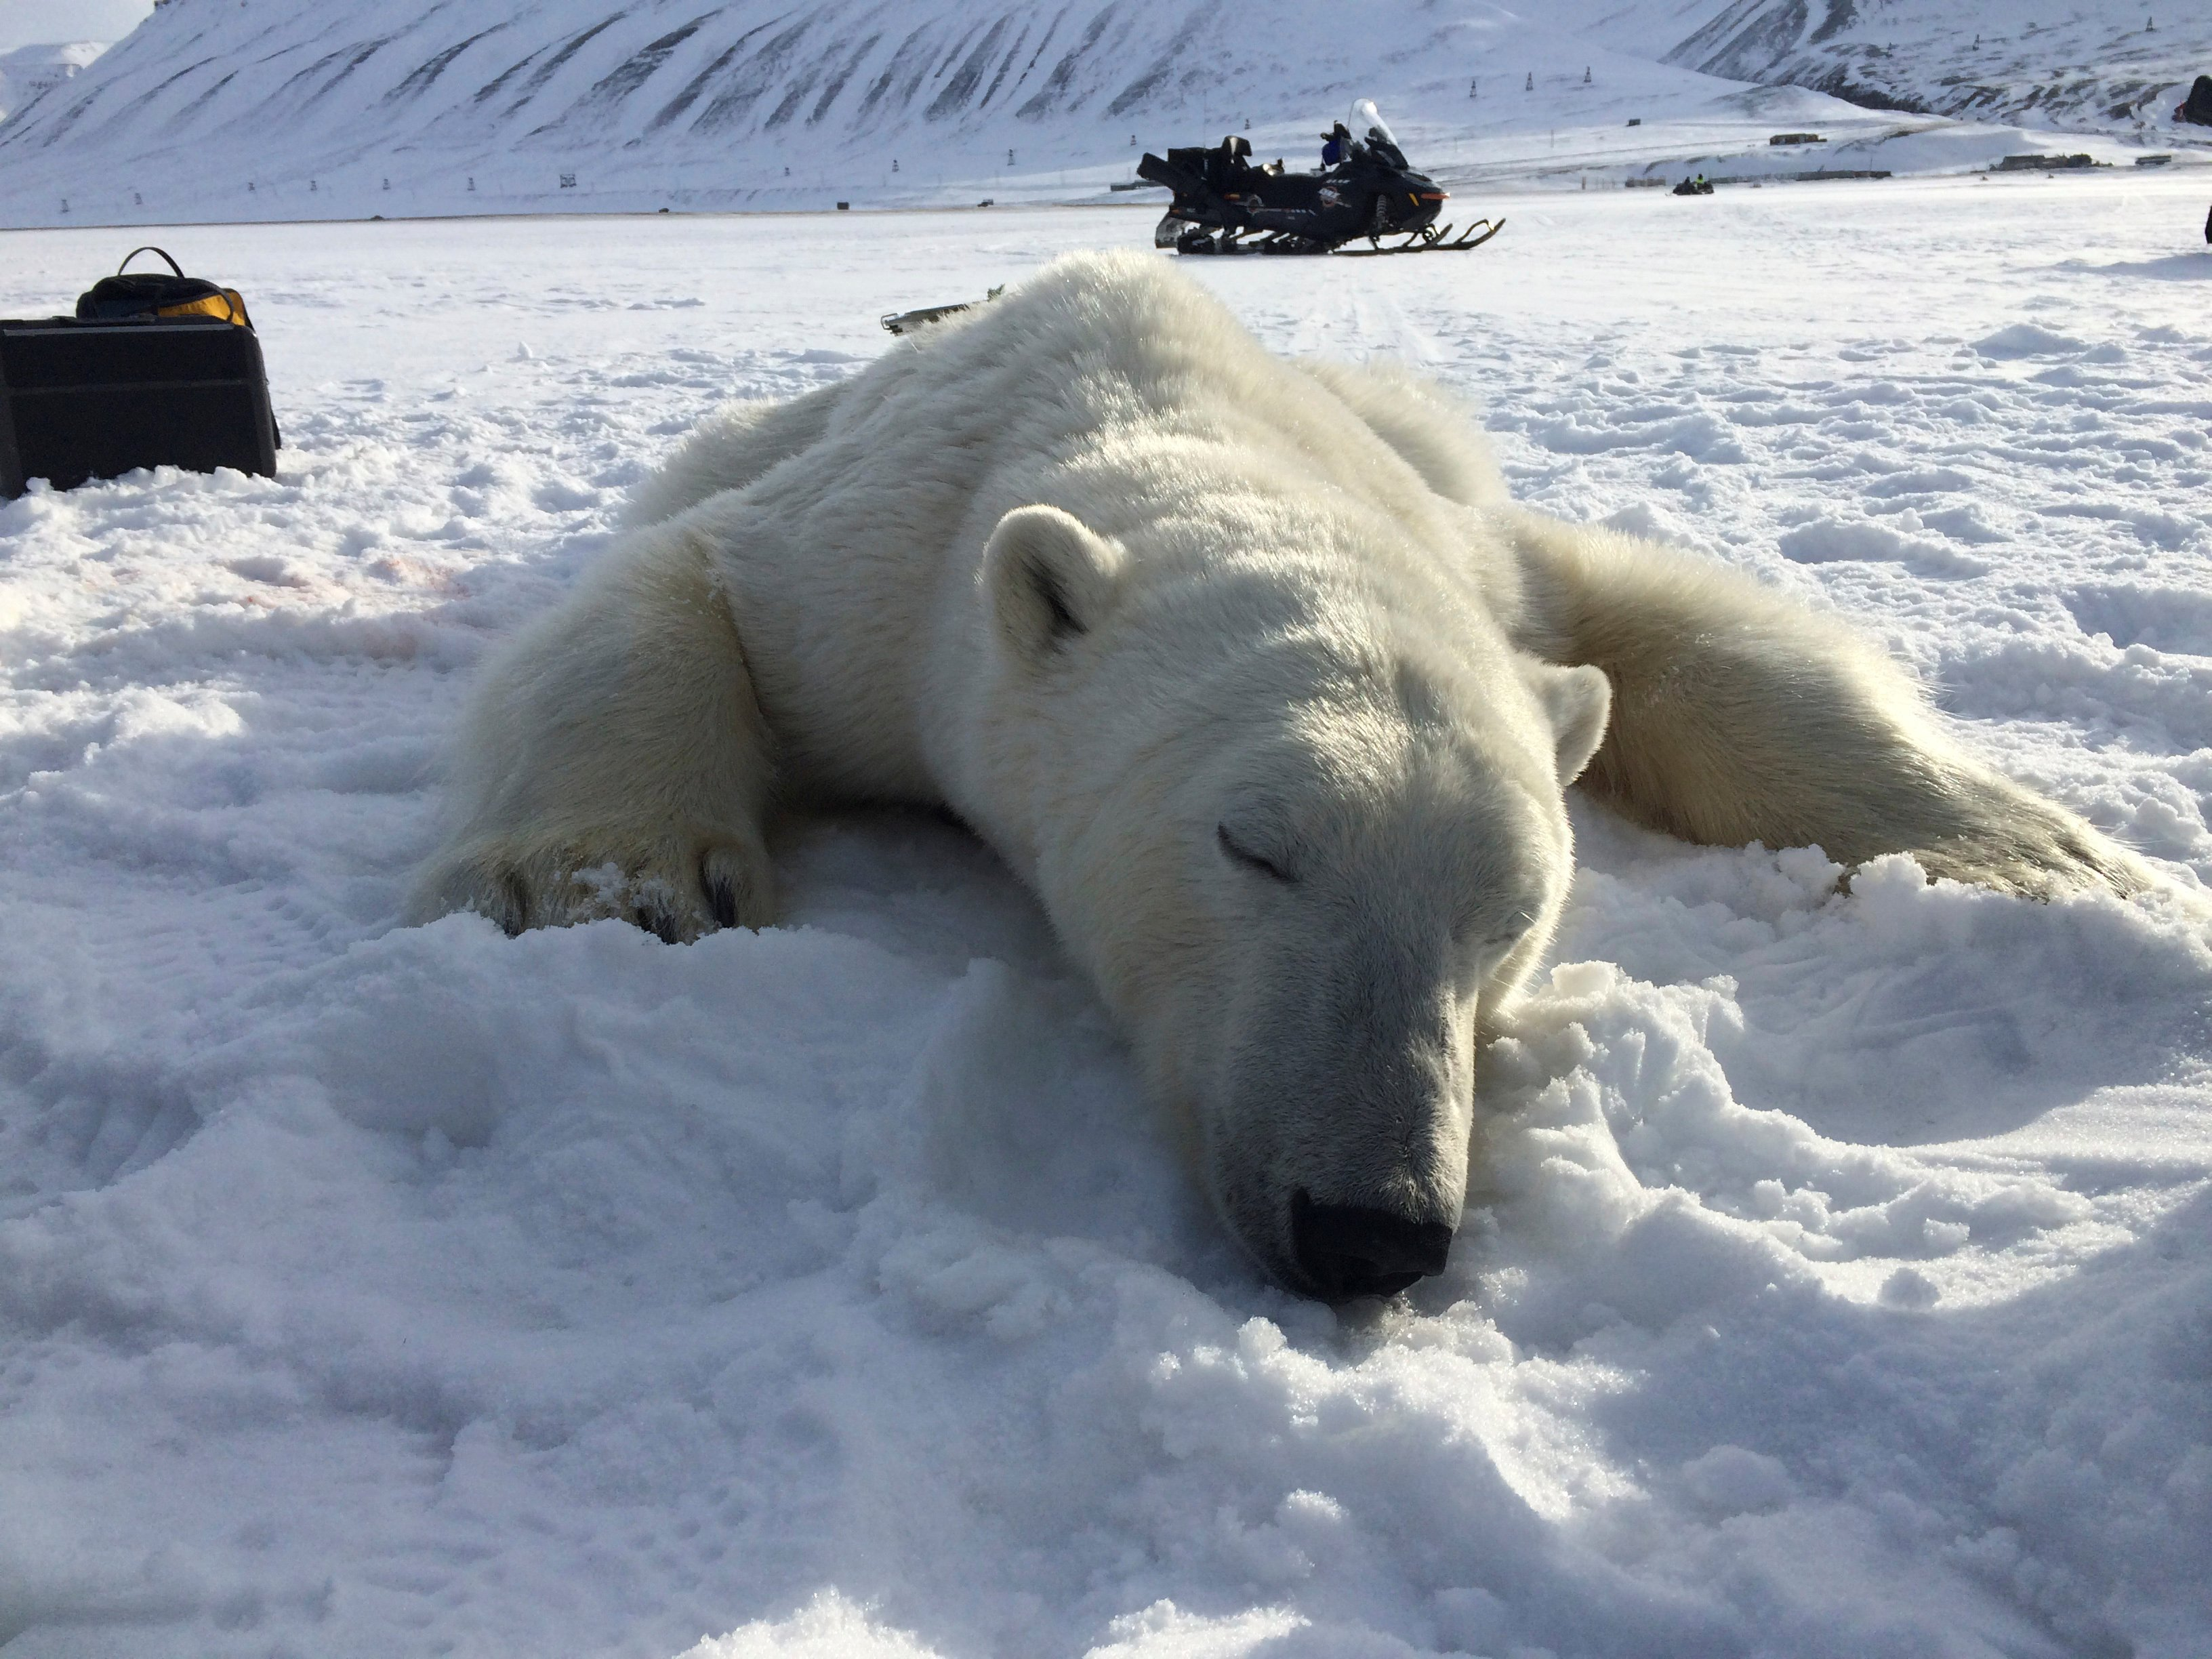 As Norway's Arctic draws visitors, more polar bears get shot